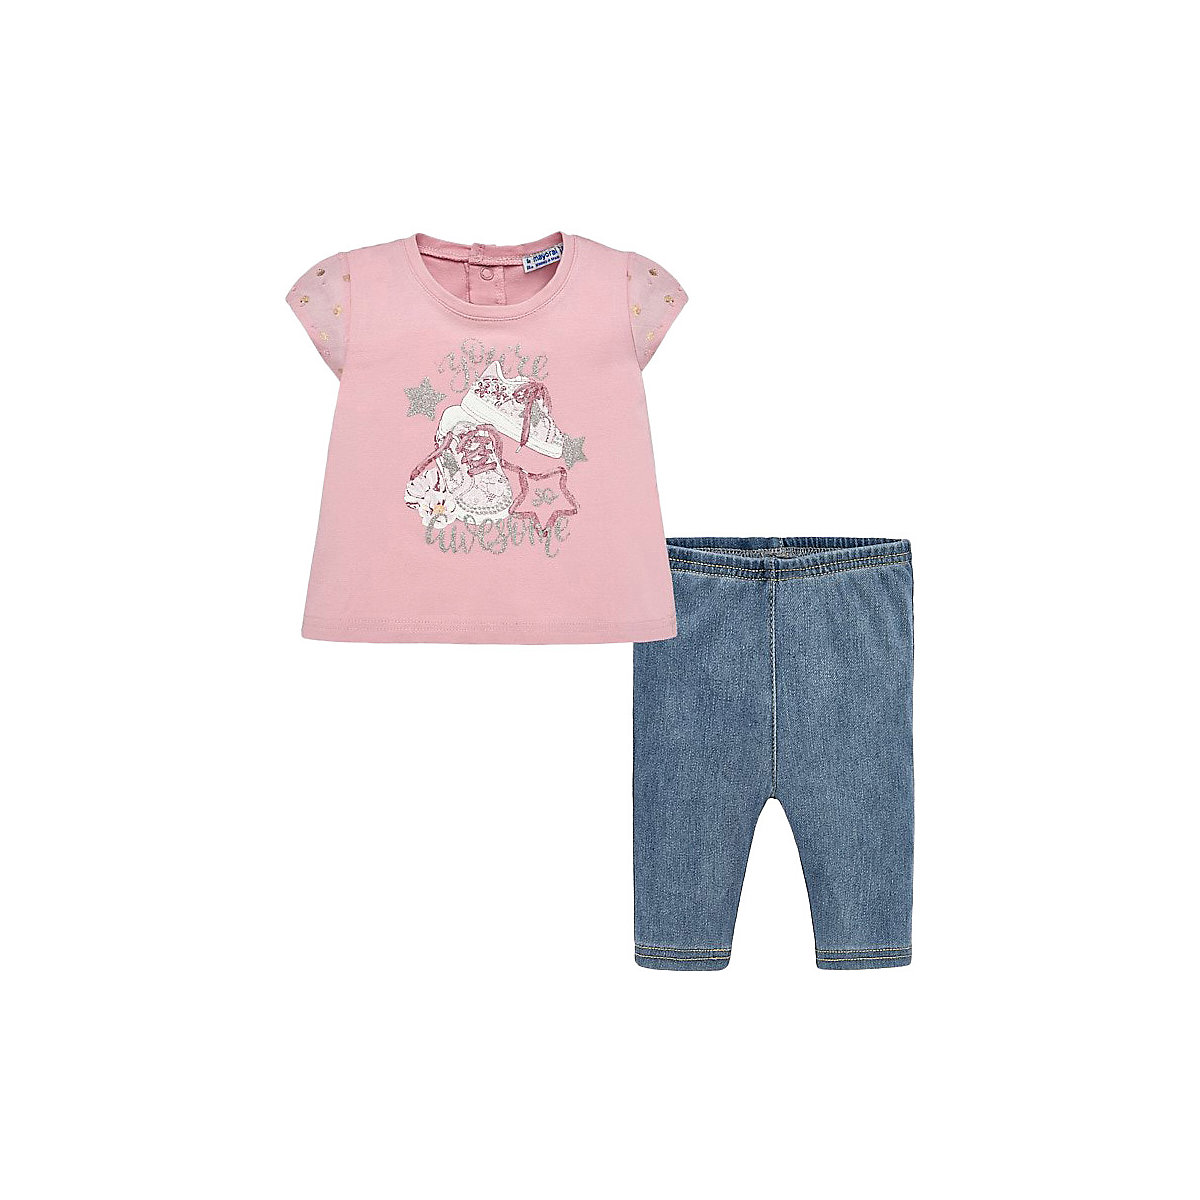 Baby's Sets MAYORAL 10690920 Set Of Clothes For Kids T-shirt Legs Shirt Shorts Girls And Boys